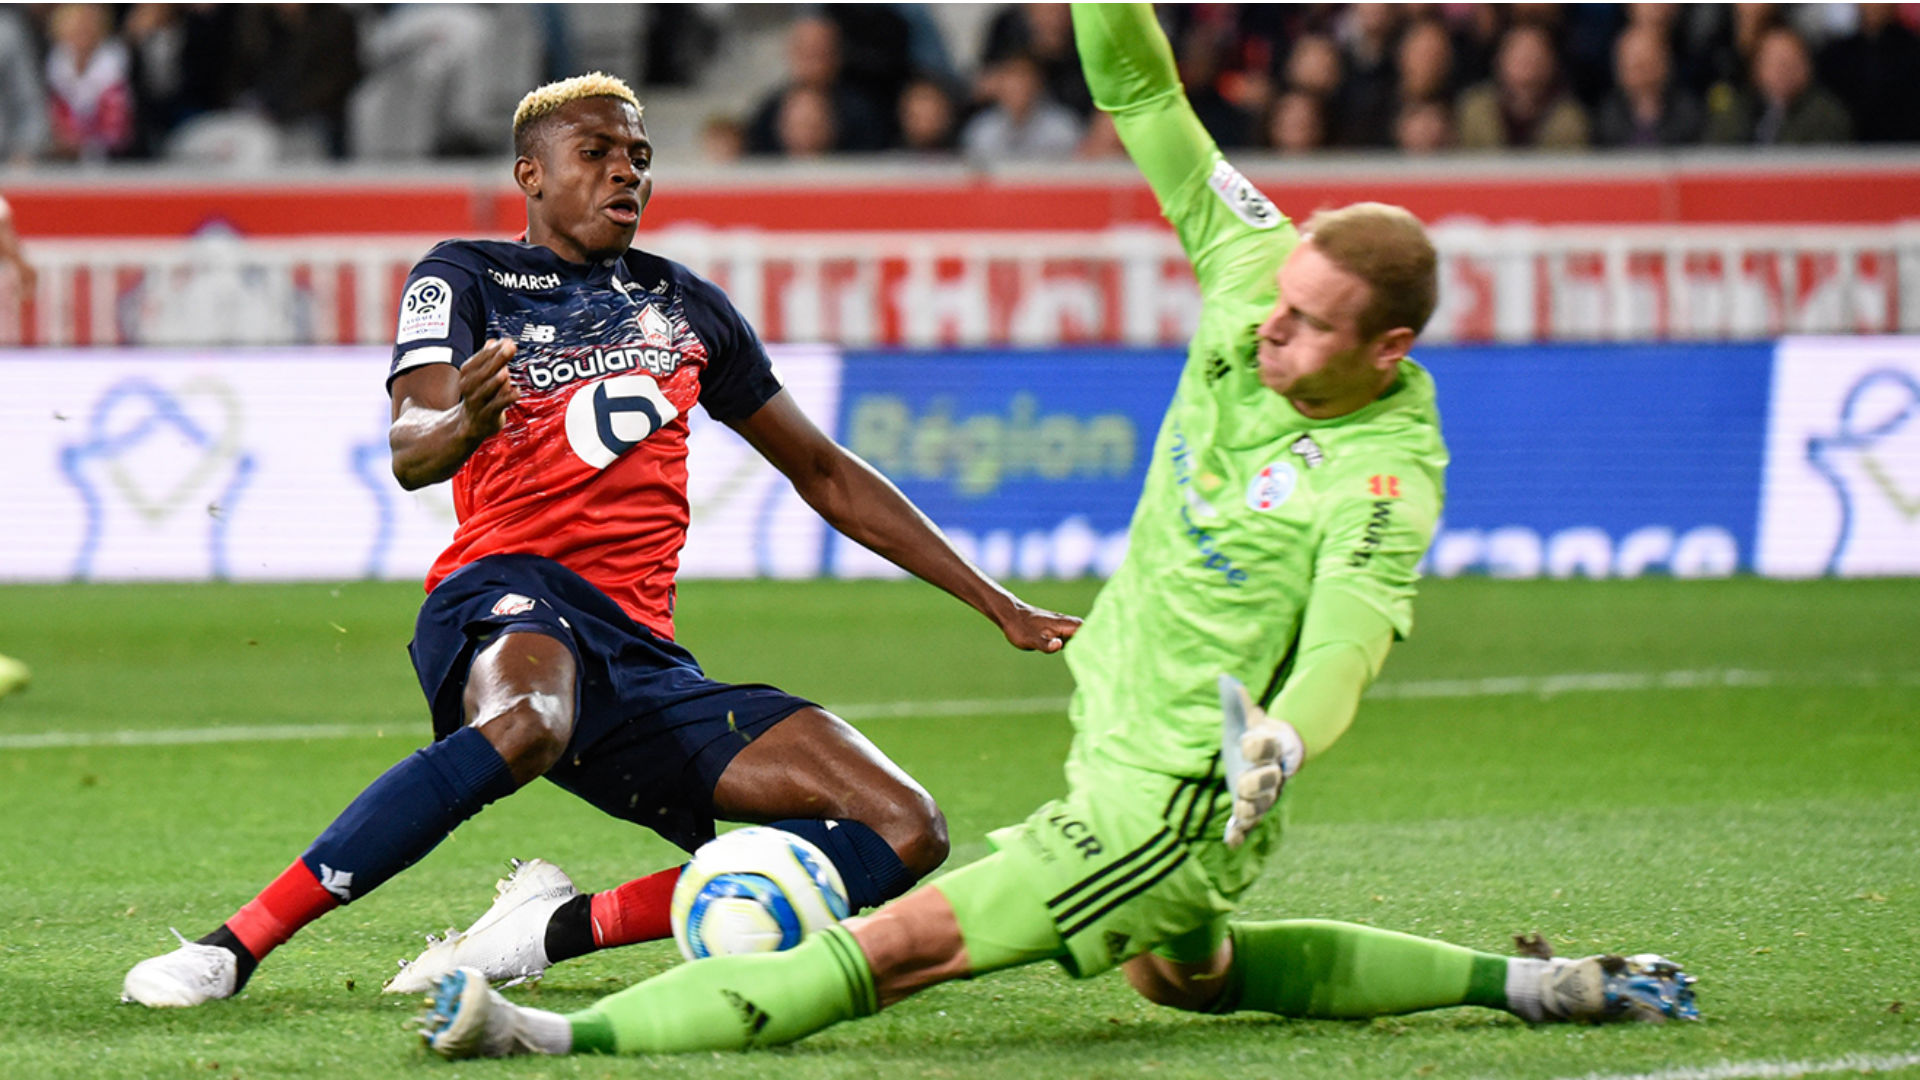 Osimhen's away struggles continue as Gradel's Toulouse down Lille